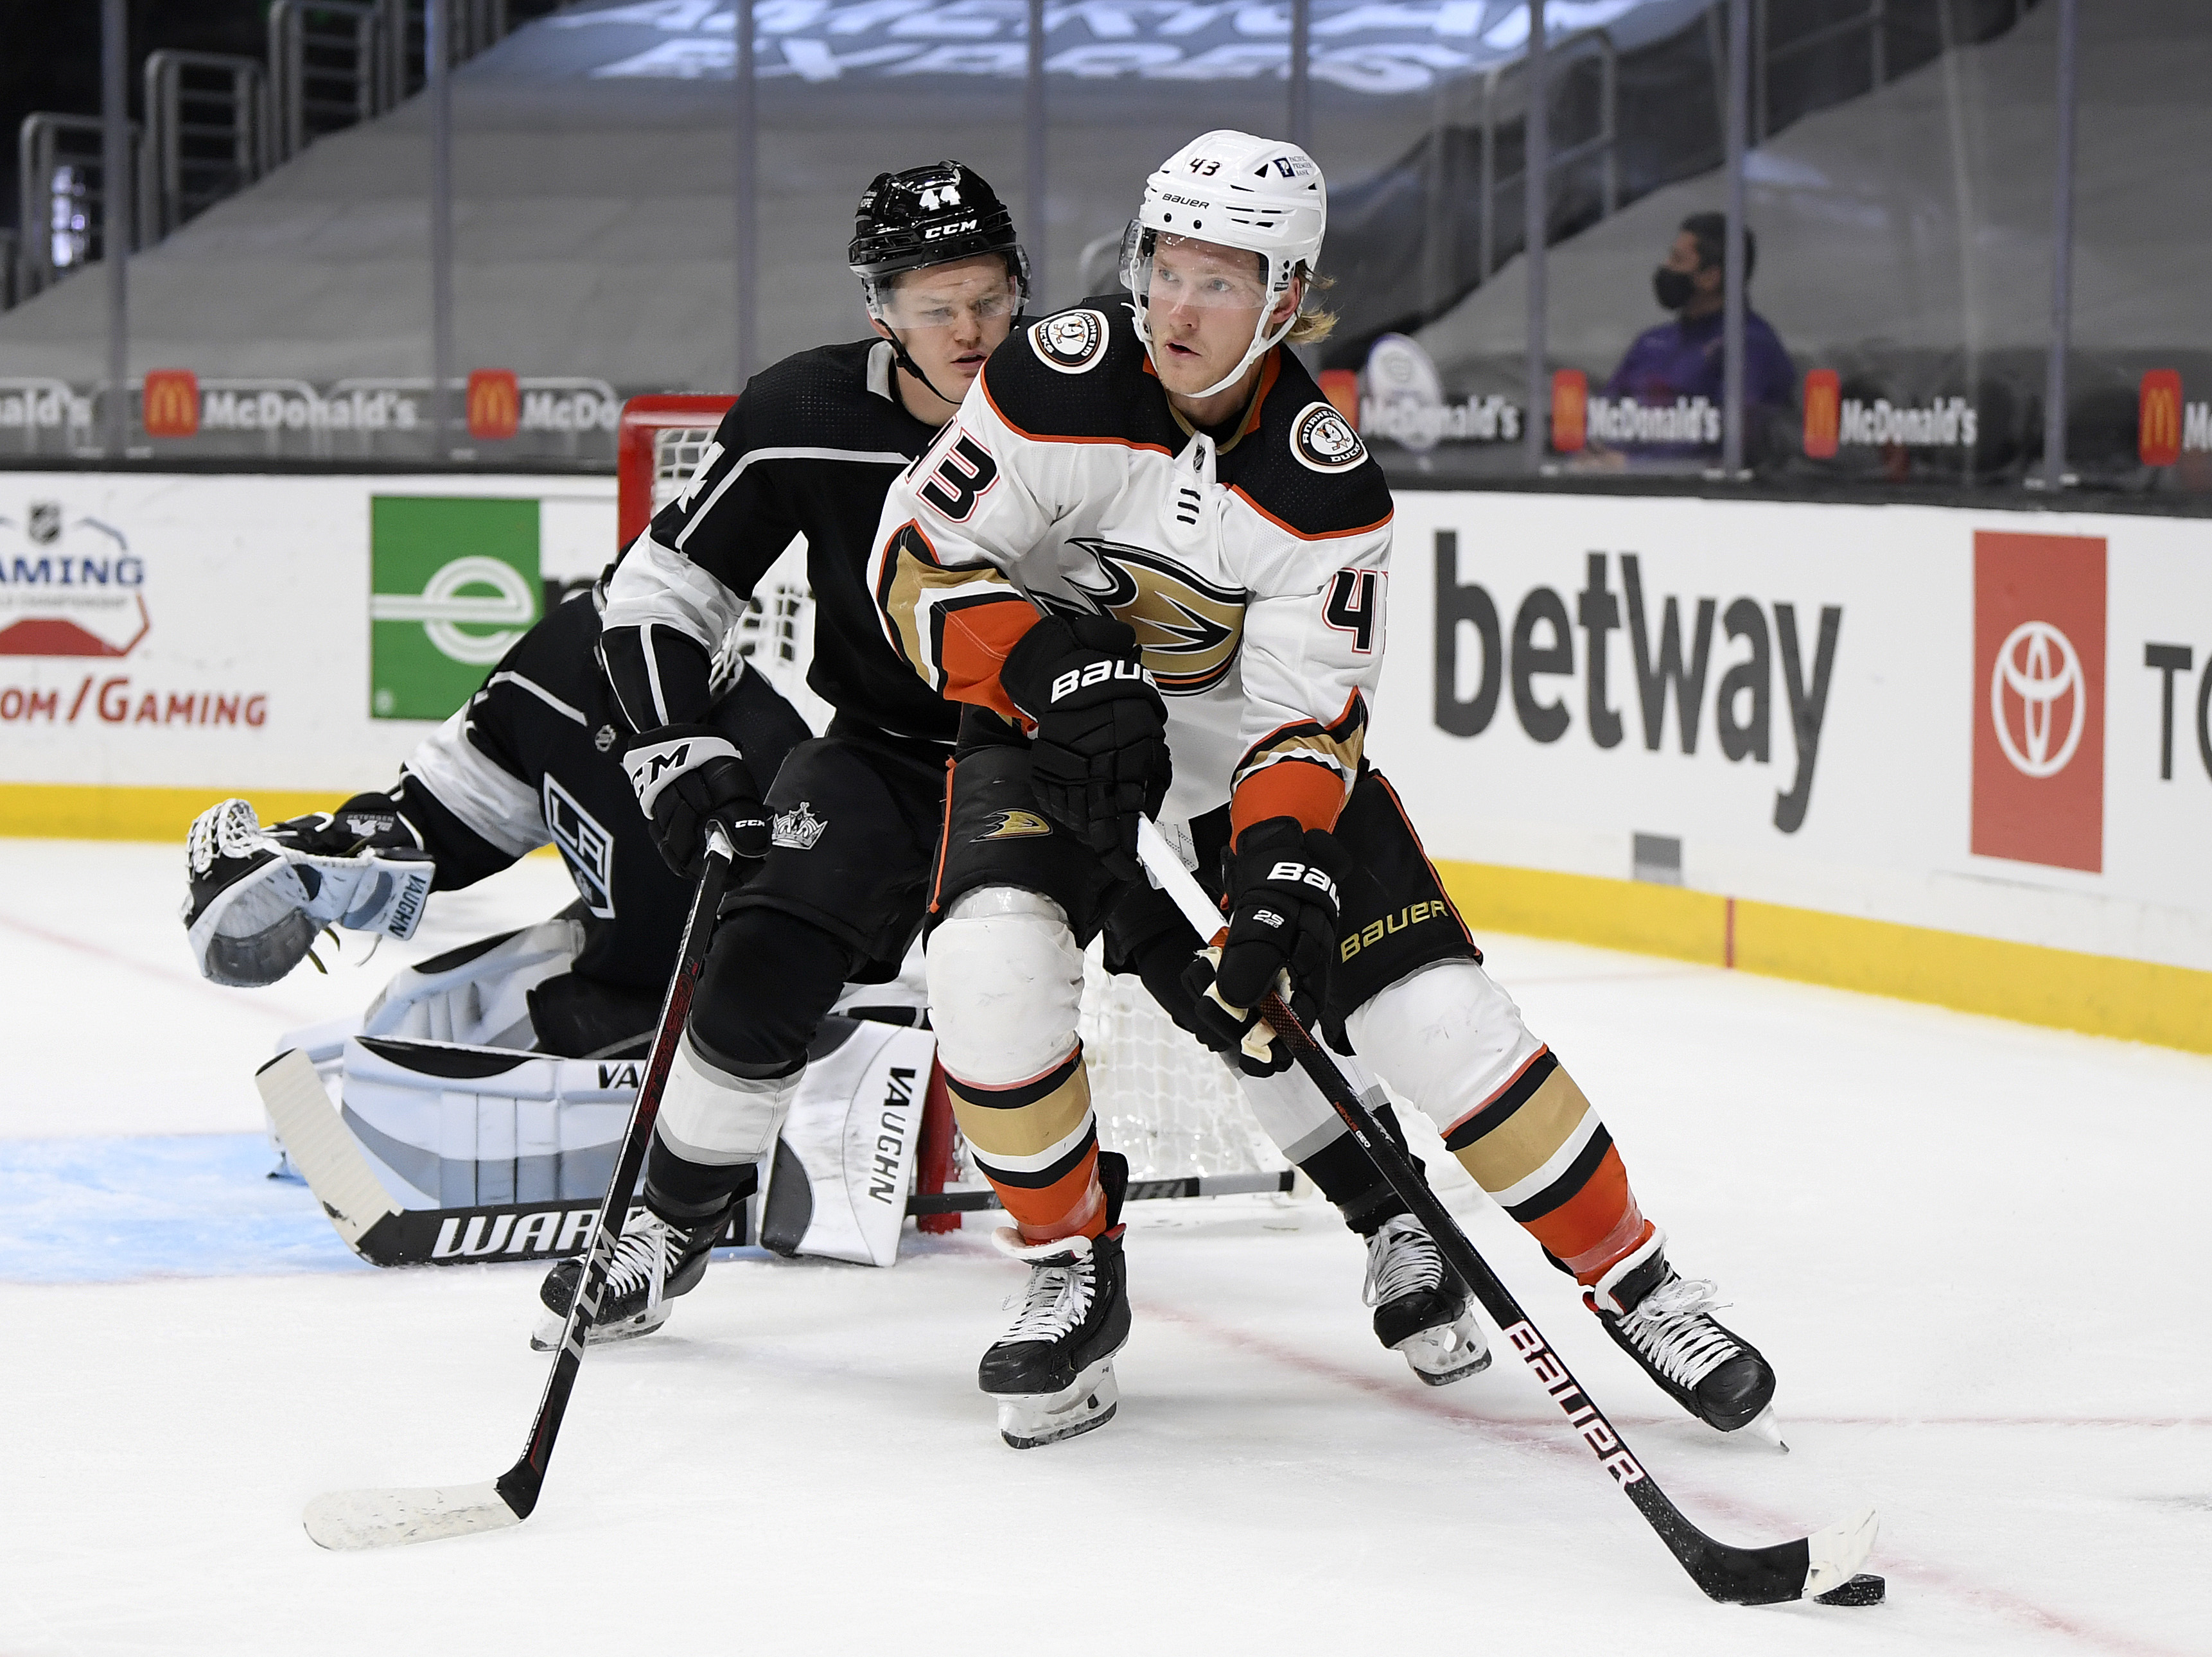 Danton Heinen #43 of the Anaheim Ducks fends off Mikey Anderson #44 of the Los Angeles Kings during the first period at Staples Center on April 20, 2021 in Los Angeles, California.